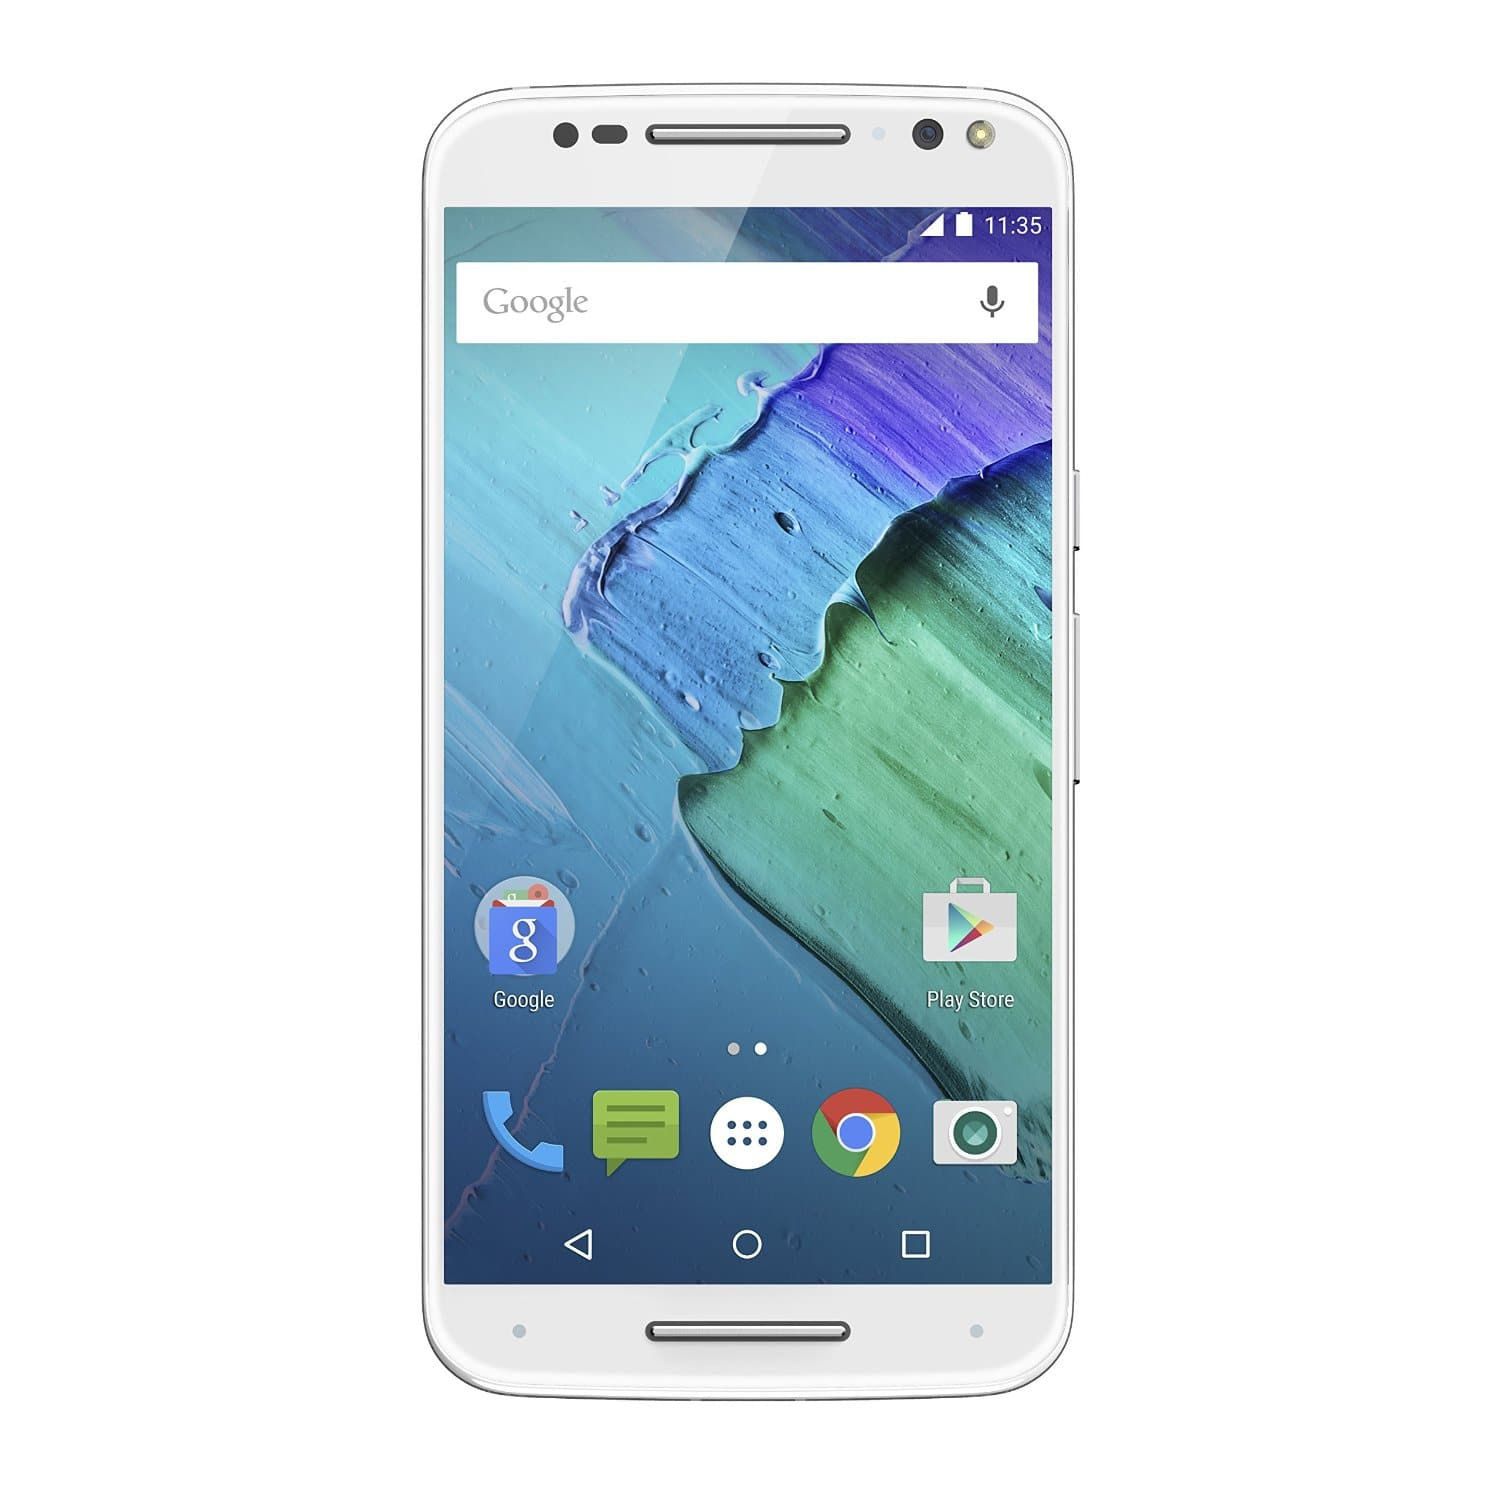 Moto X Pure Edition - White and Bamboo - 16GB (as low as $145) - 32GB (as low as $171) - Amazon Warehouse